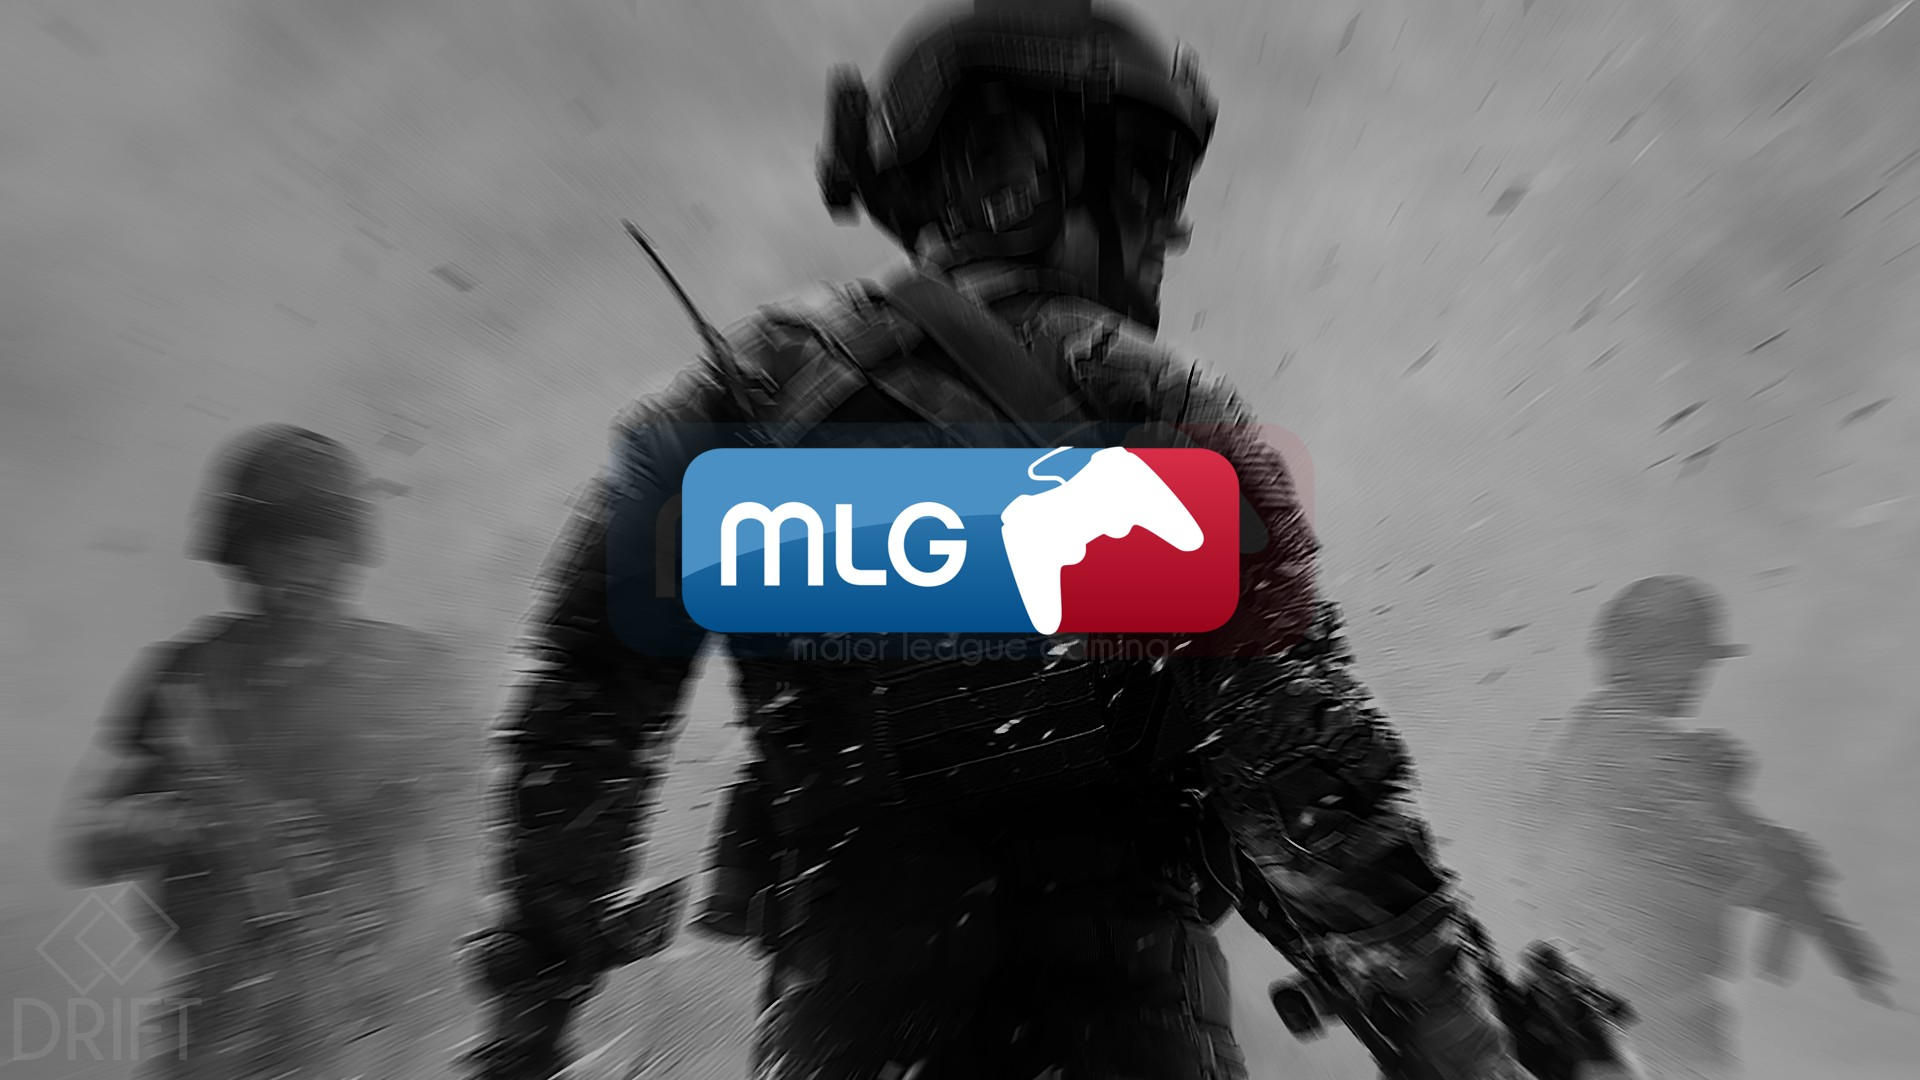 MLG Wallpaper 1 Download Free Beautiful Full HD Backgrounds For